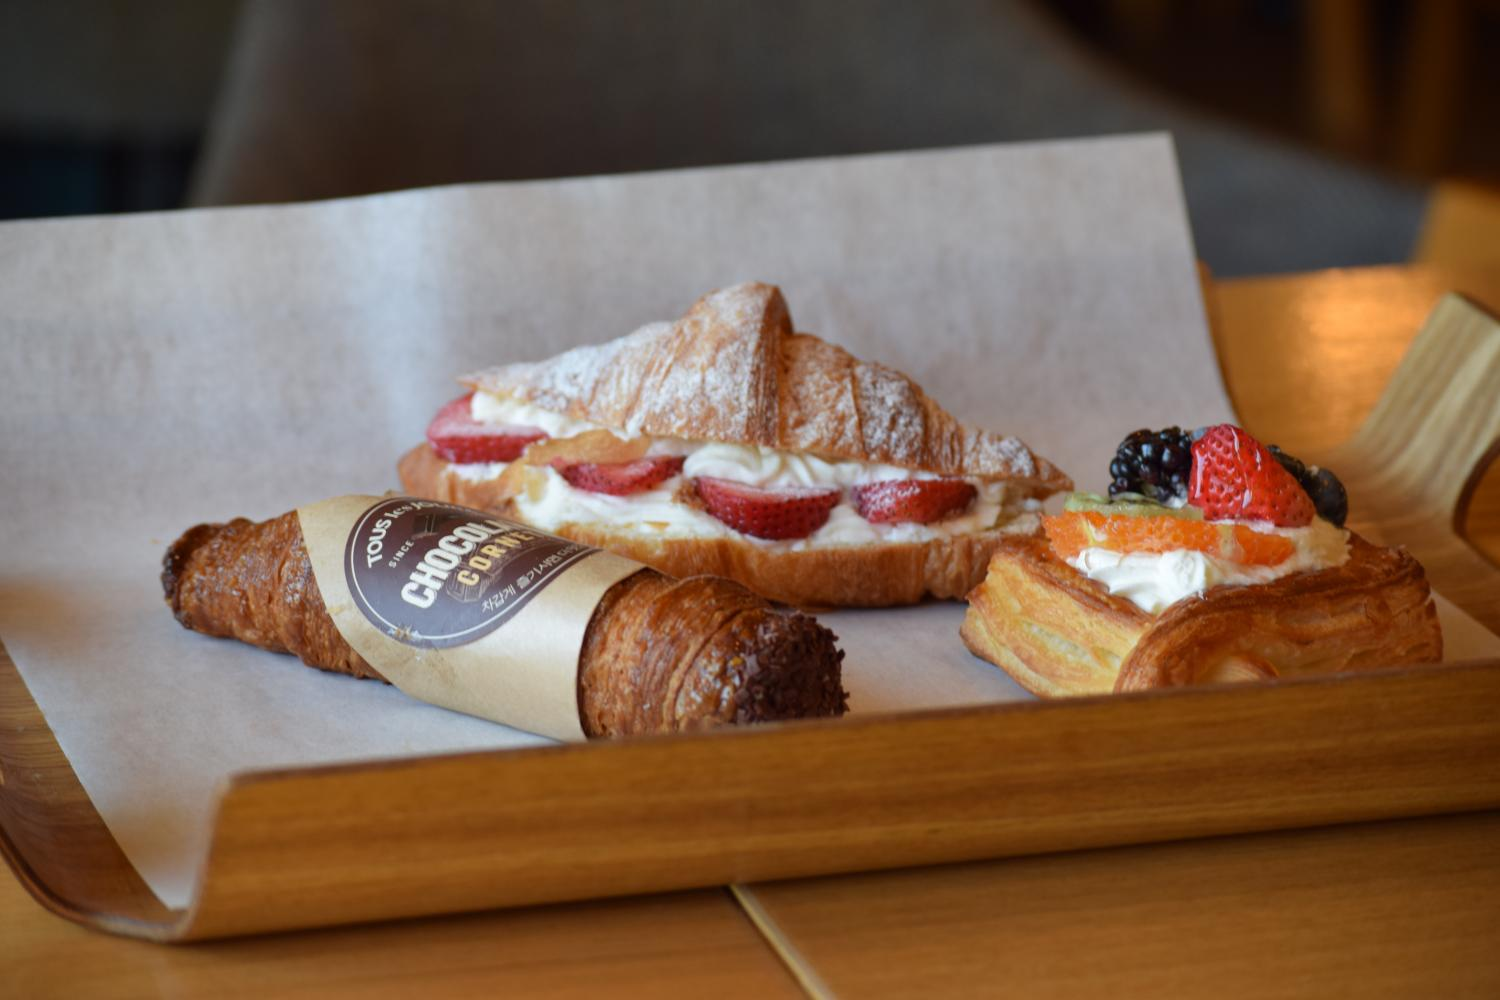 Tous Les Jour's chocolate coronate, strawberry croissant and Fruit Tart